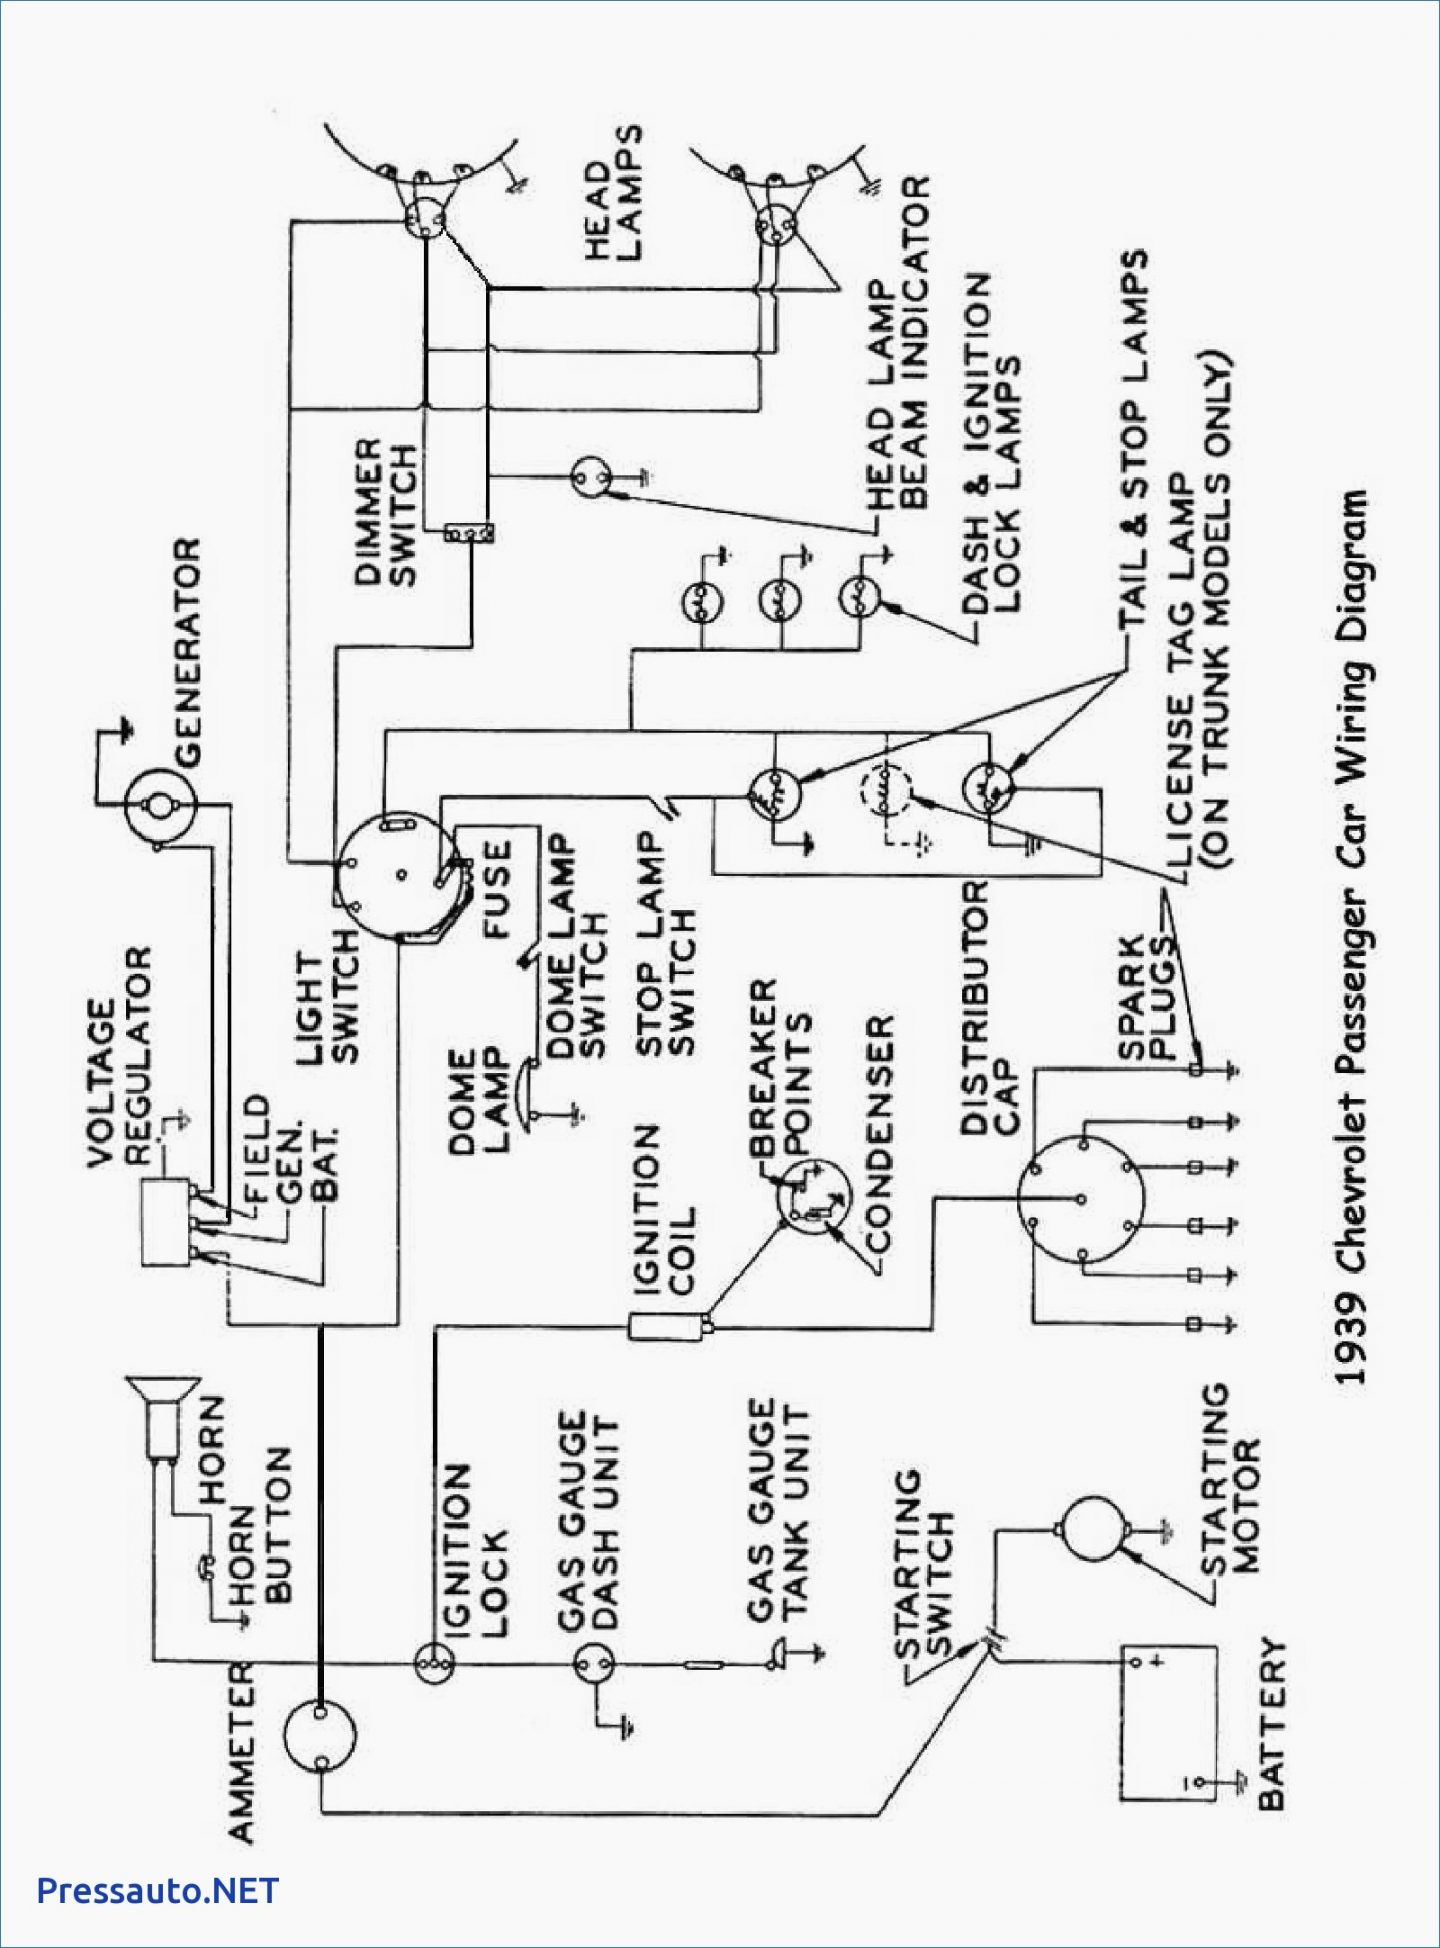 Free Electrical Drawing At For Personal Use Wiring Materials Pdf 1440x1948 Welding Machine Diagram Switch Components Wire